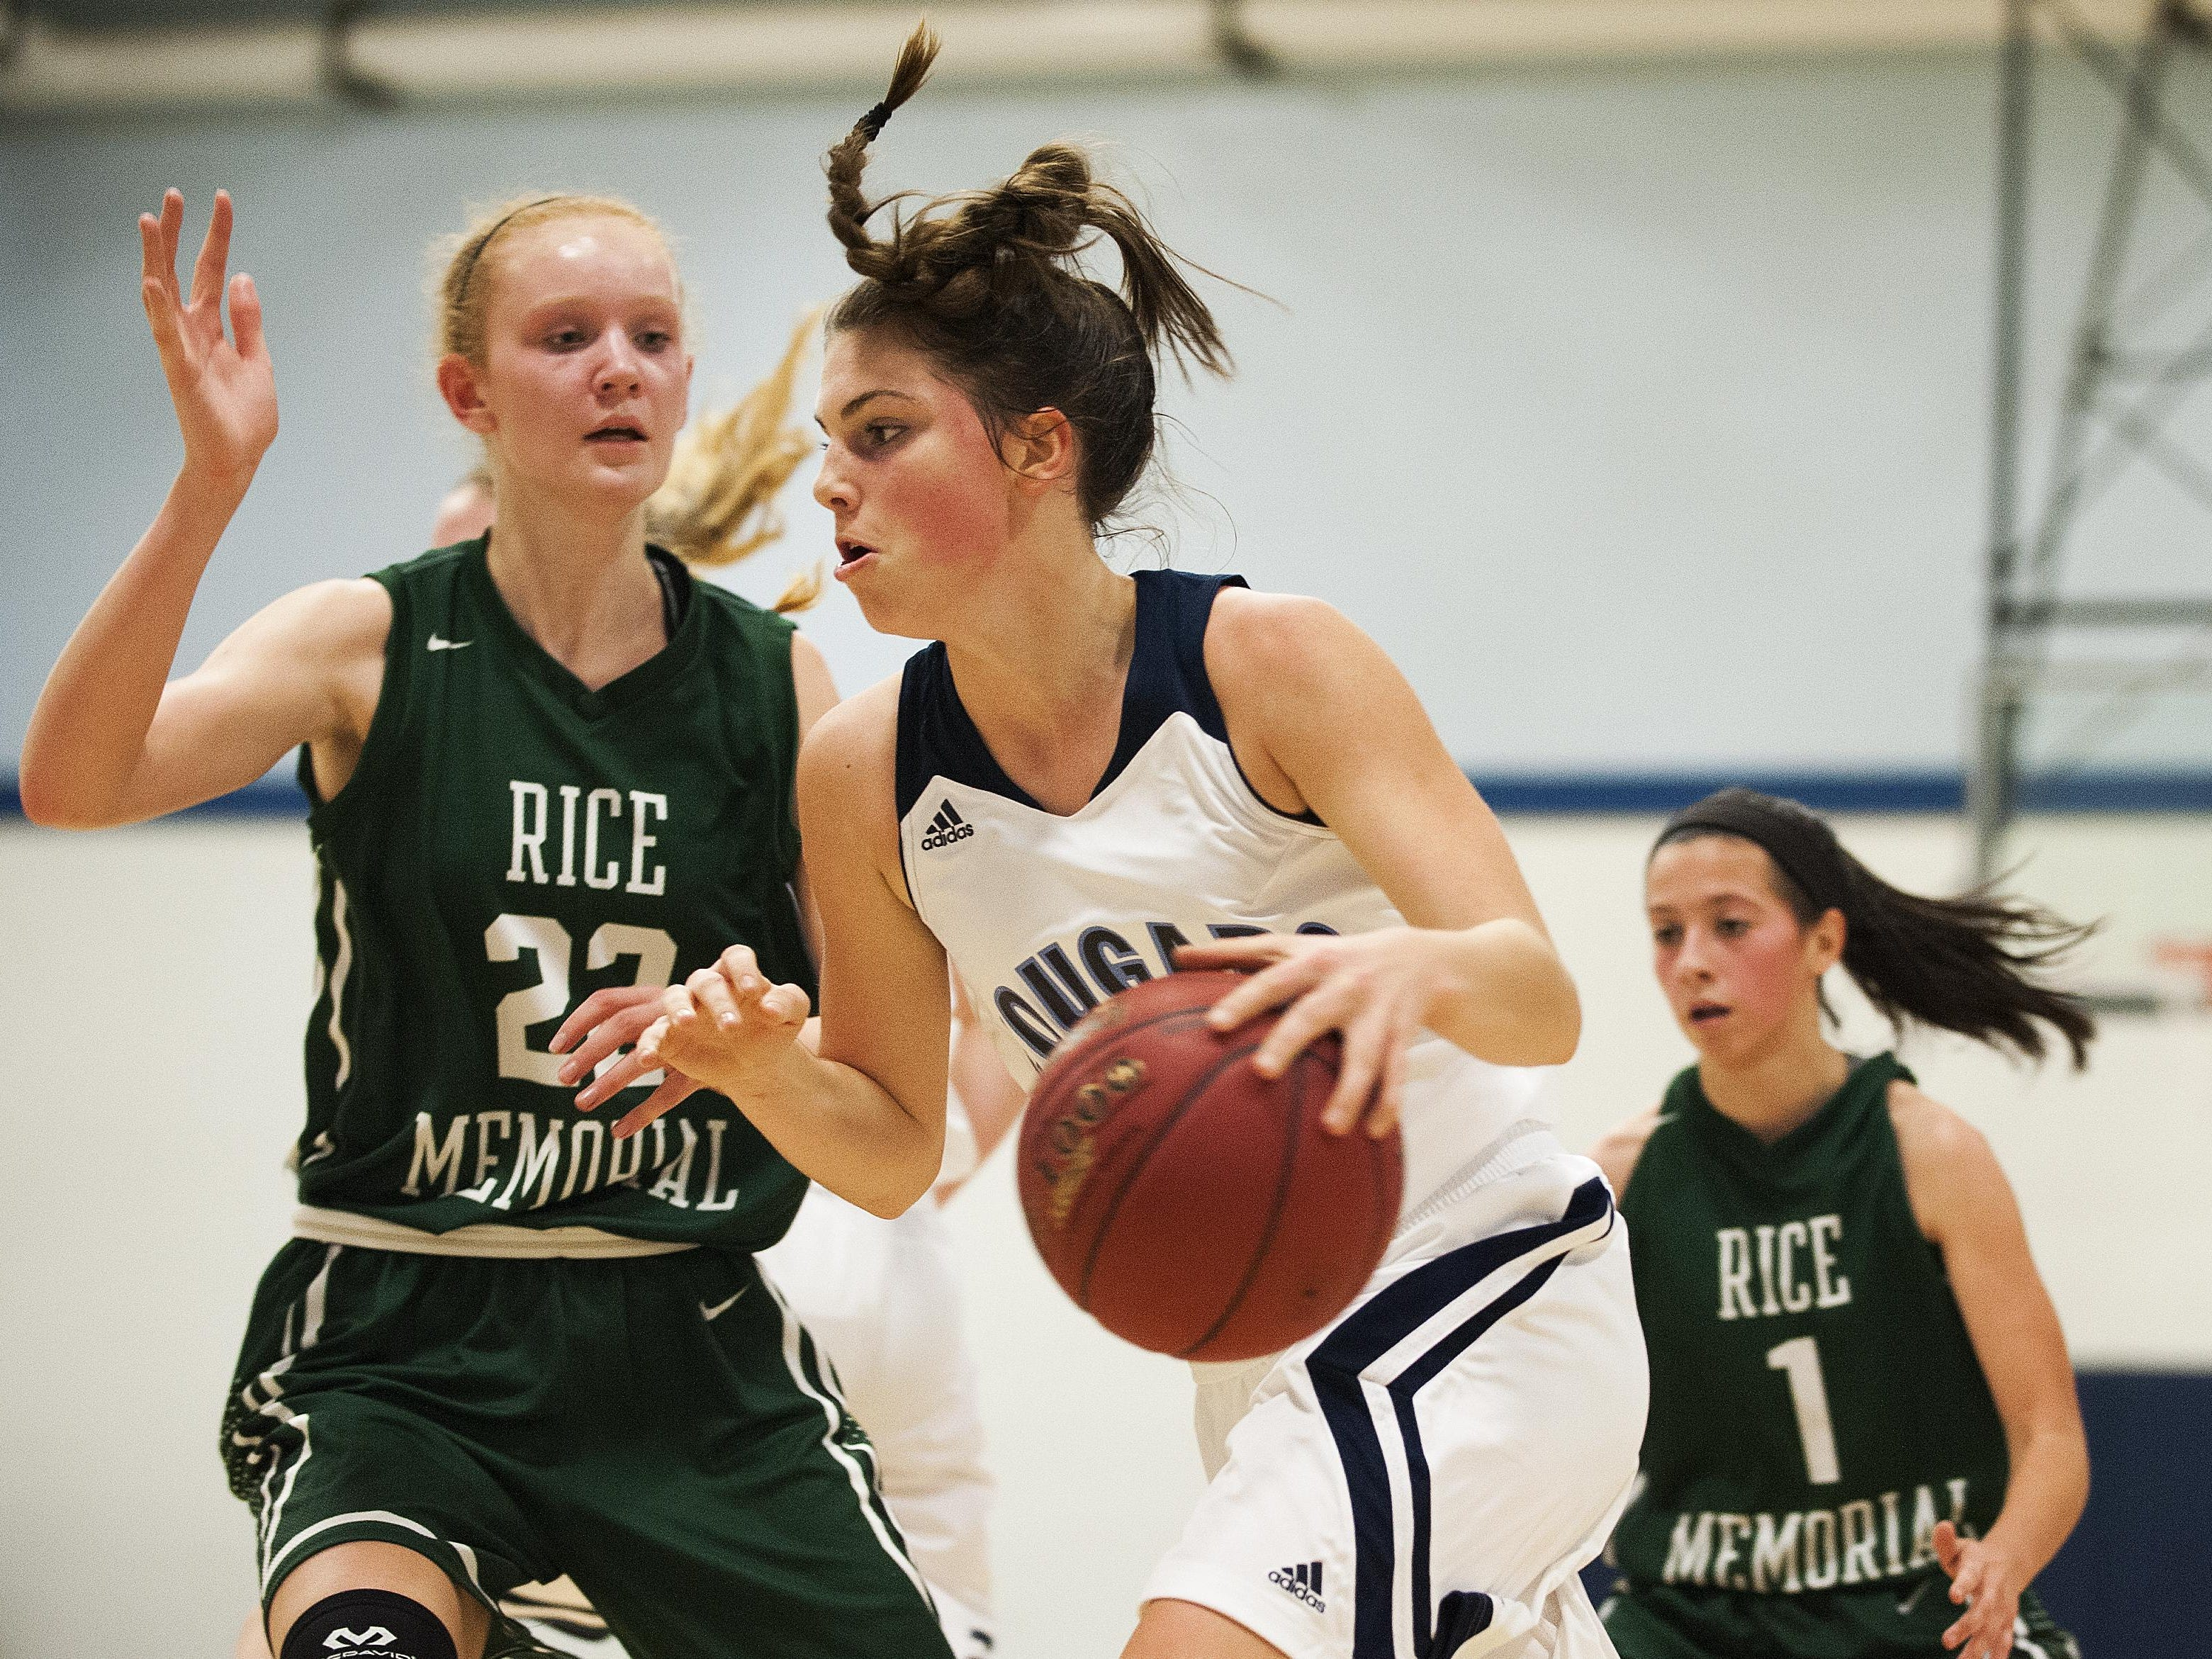 Mount Mansfield forward Perry Willett (5) drives to the hoop past Rice forward Lizzy Lyman (22) during a high school girls basketball game last week.